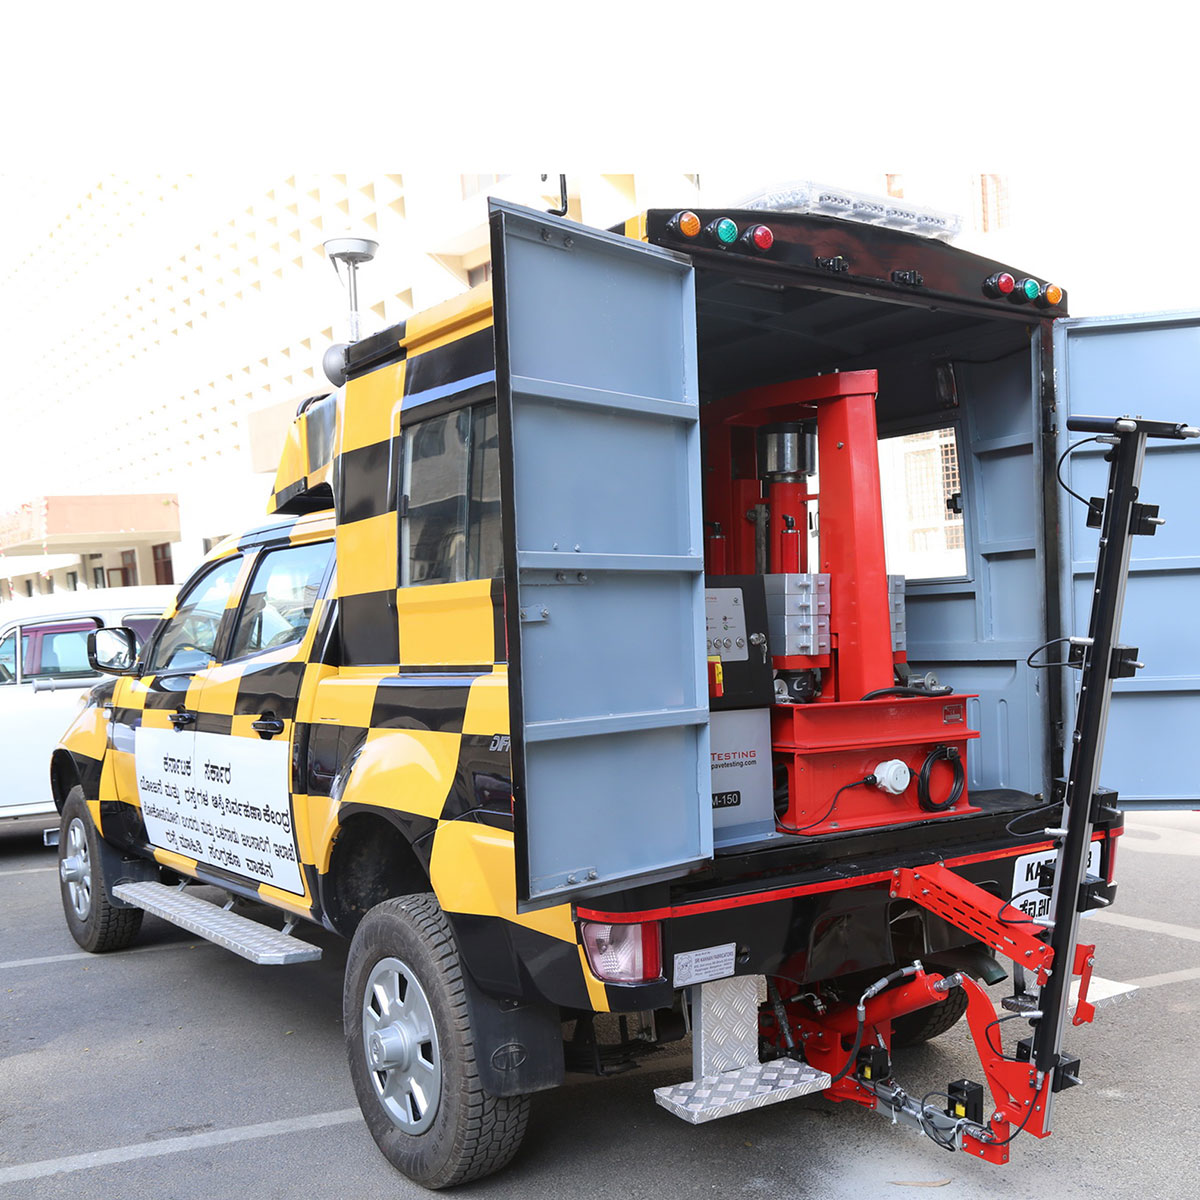 Pavetesting Vehicle Mounted Falling Weight Deflectometer